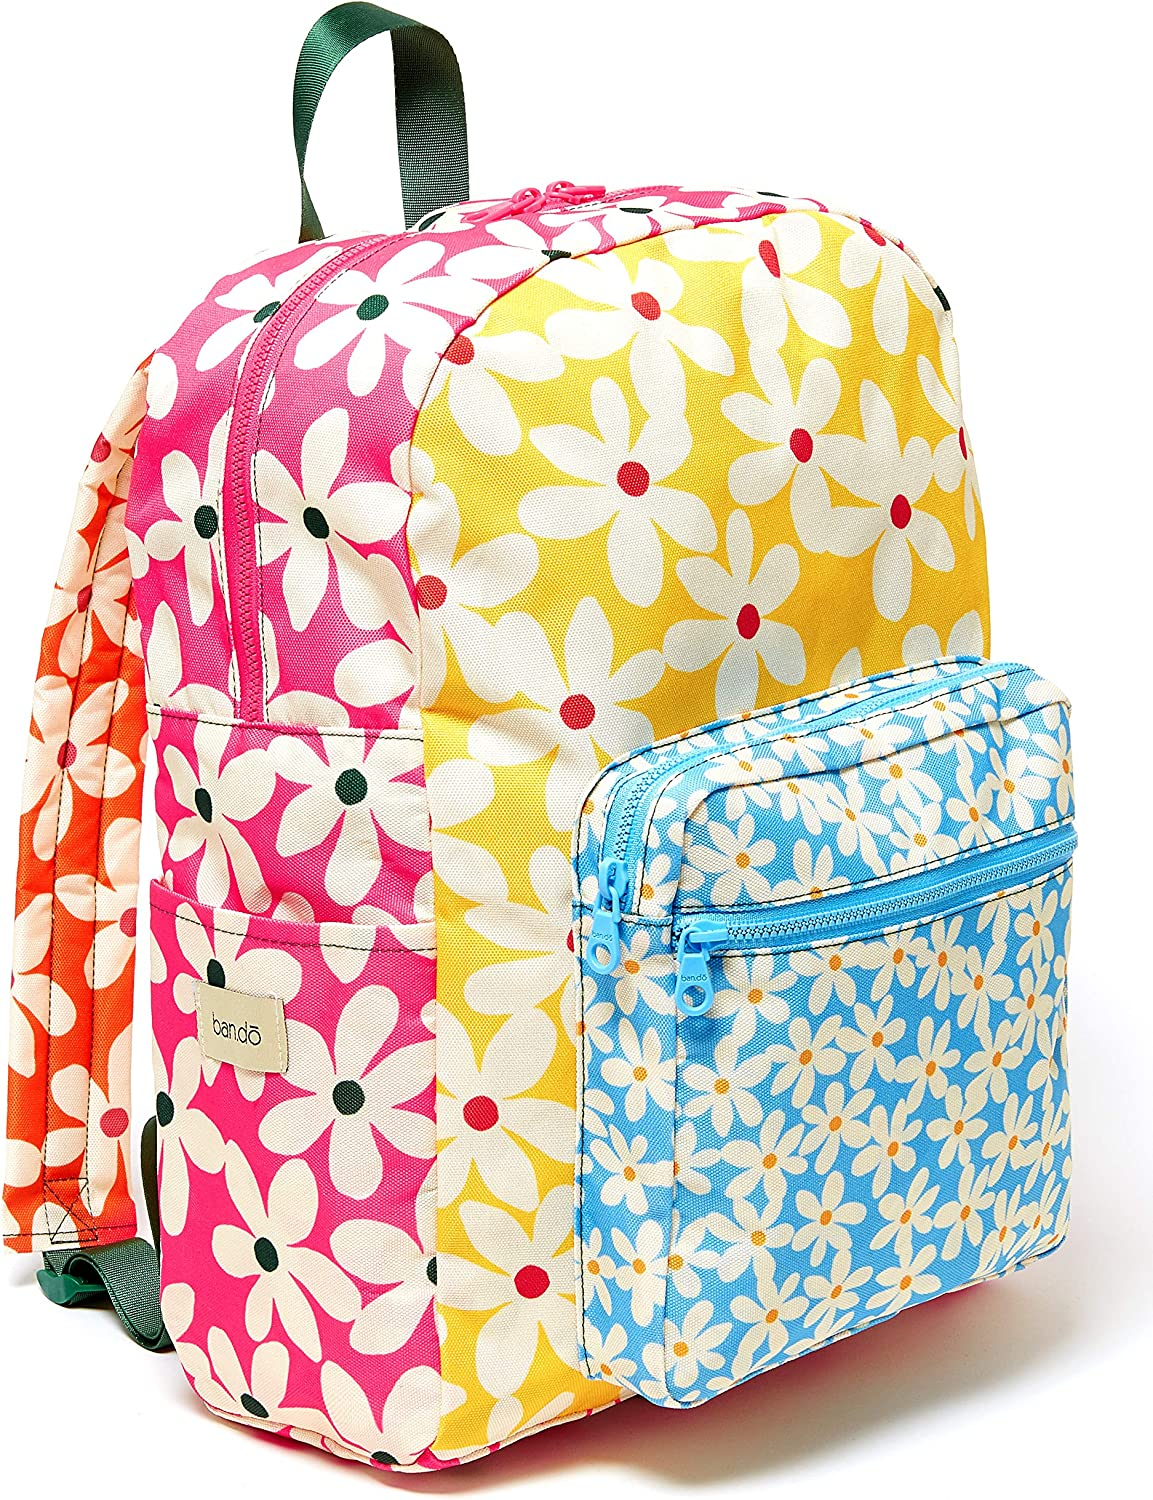 ban.do Go-Go Backpack with Computer Storage Sleeve for School/Work, Lightweight Computer Bag Fits Up to 15 inch Laptop